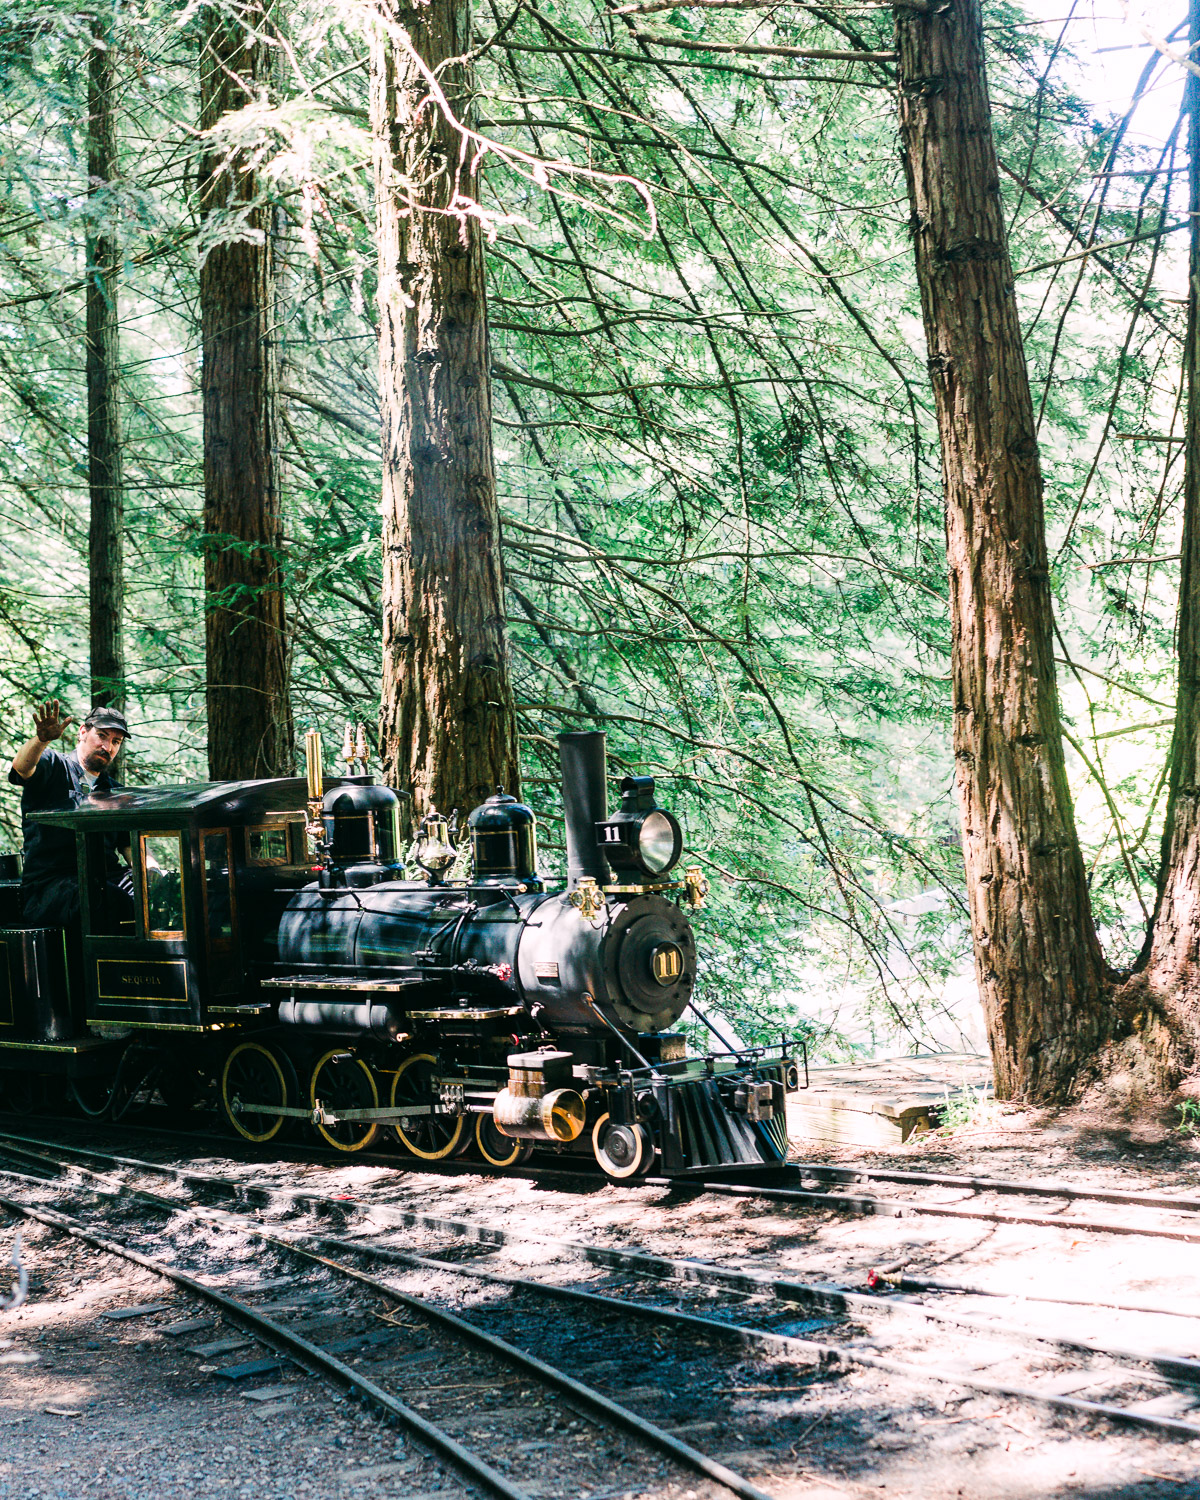 Miniature train ride in Tilden park, just a quick drive from Claremont Hotel